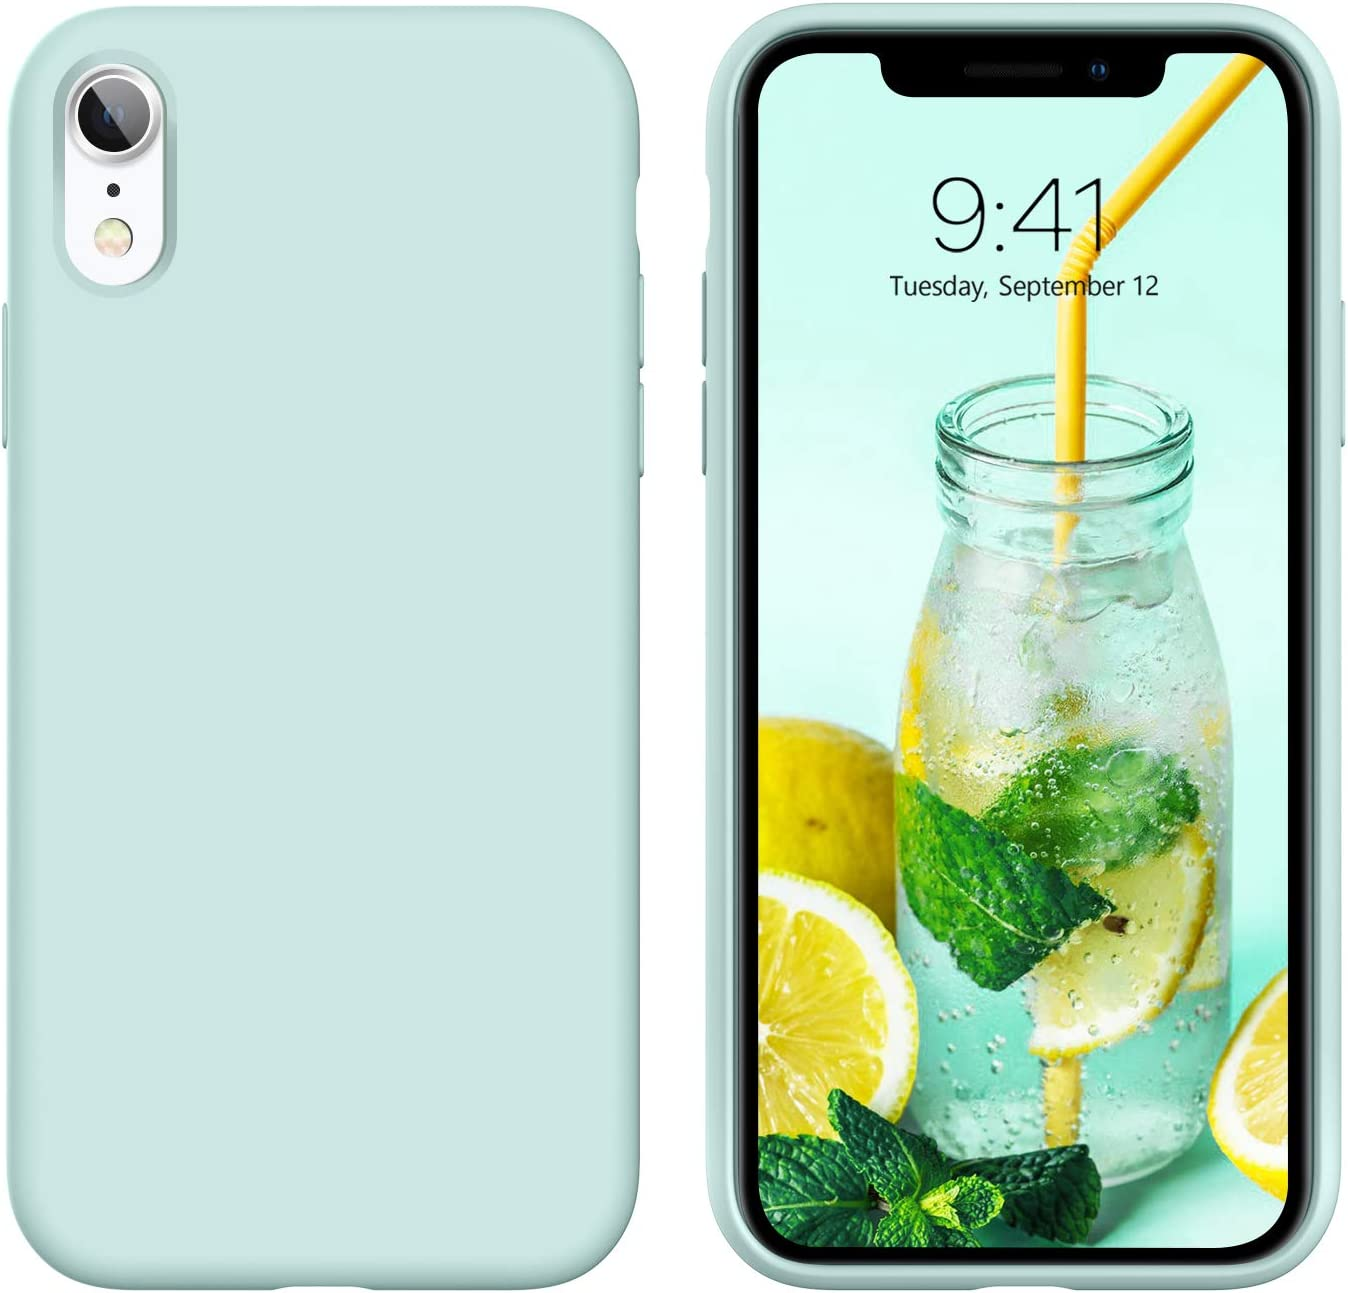 DUEDUE iPhone XR Case, Liquid Silicone Soft Gel Rubber Slim Cover with Microfiber Cloth Lining Cushion Shockproof Full Body Protective Case for iPhone XR 6.1 Inch, Mint Green